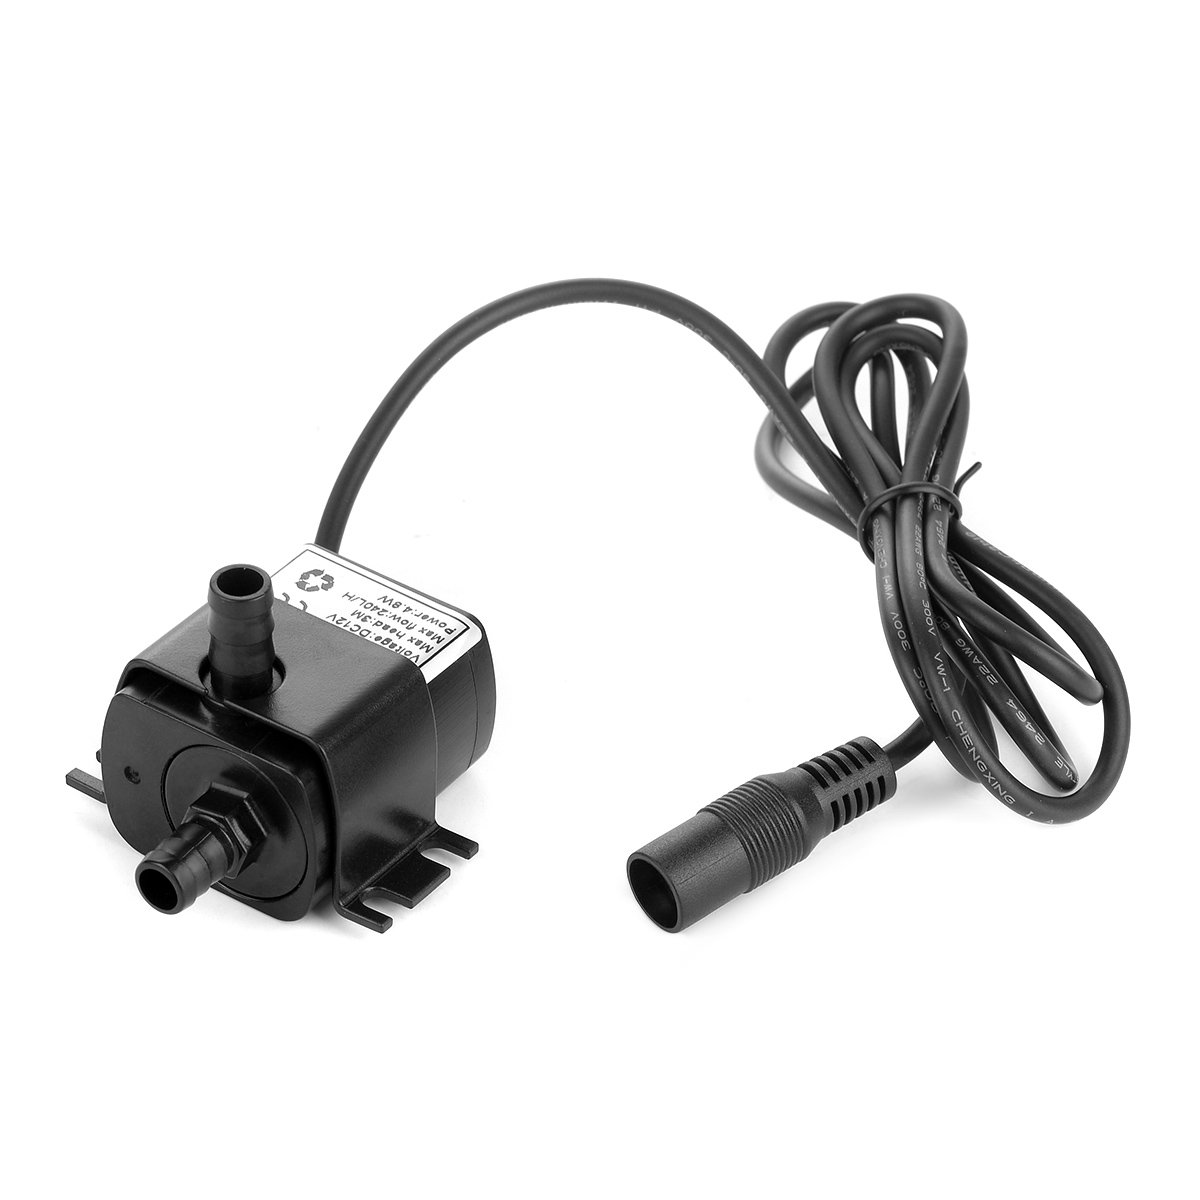 Mavel Star 12 Volt Small Mini Submersible Water Pump for Camping DIY Swamp Cooler PC CPU Water Cooling Fountain Water Fall 63 GPH Upgraded Version